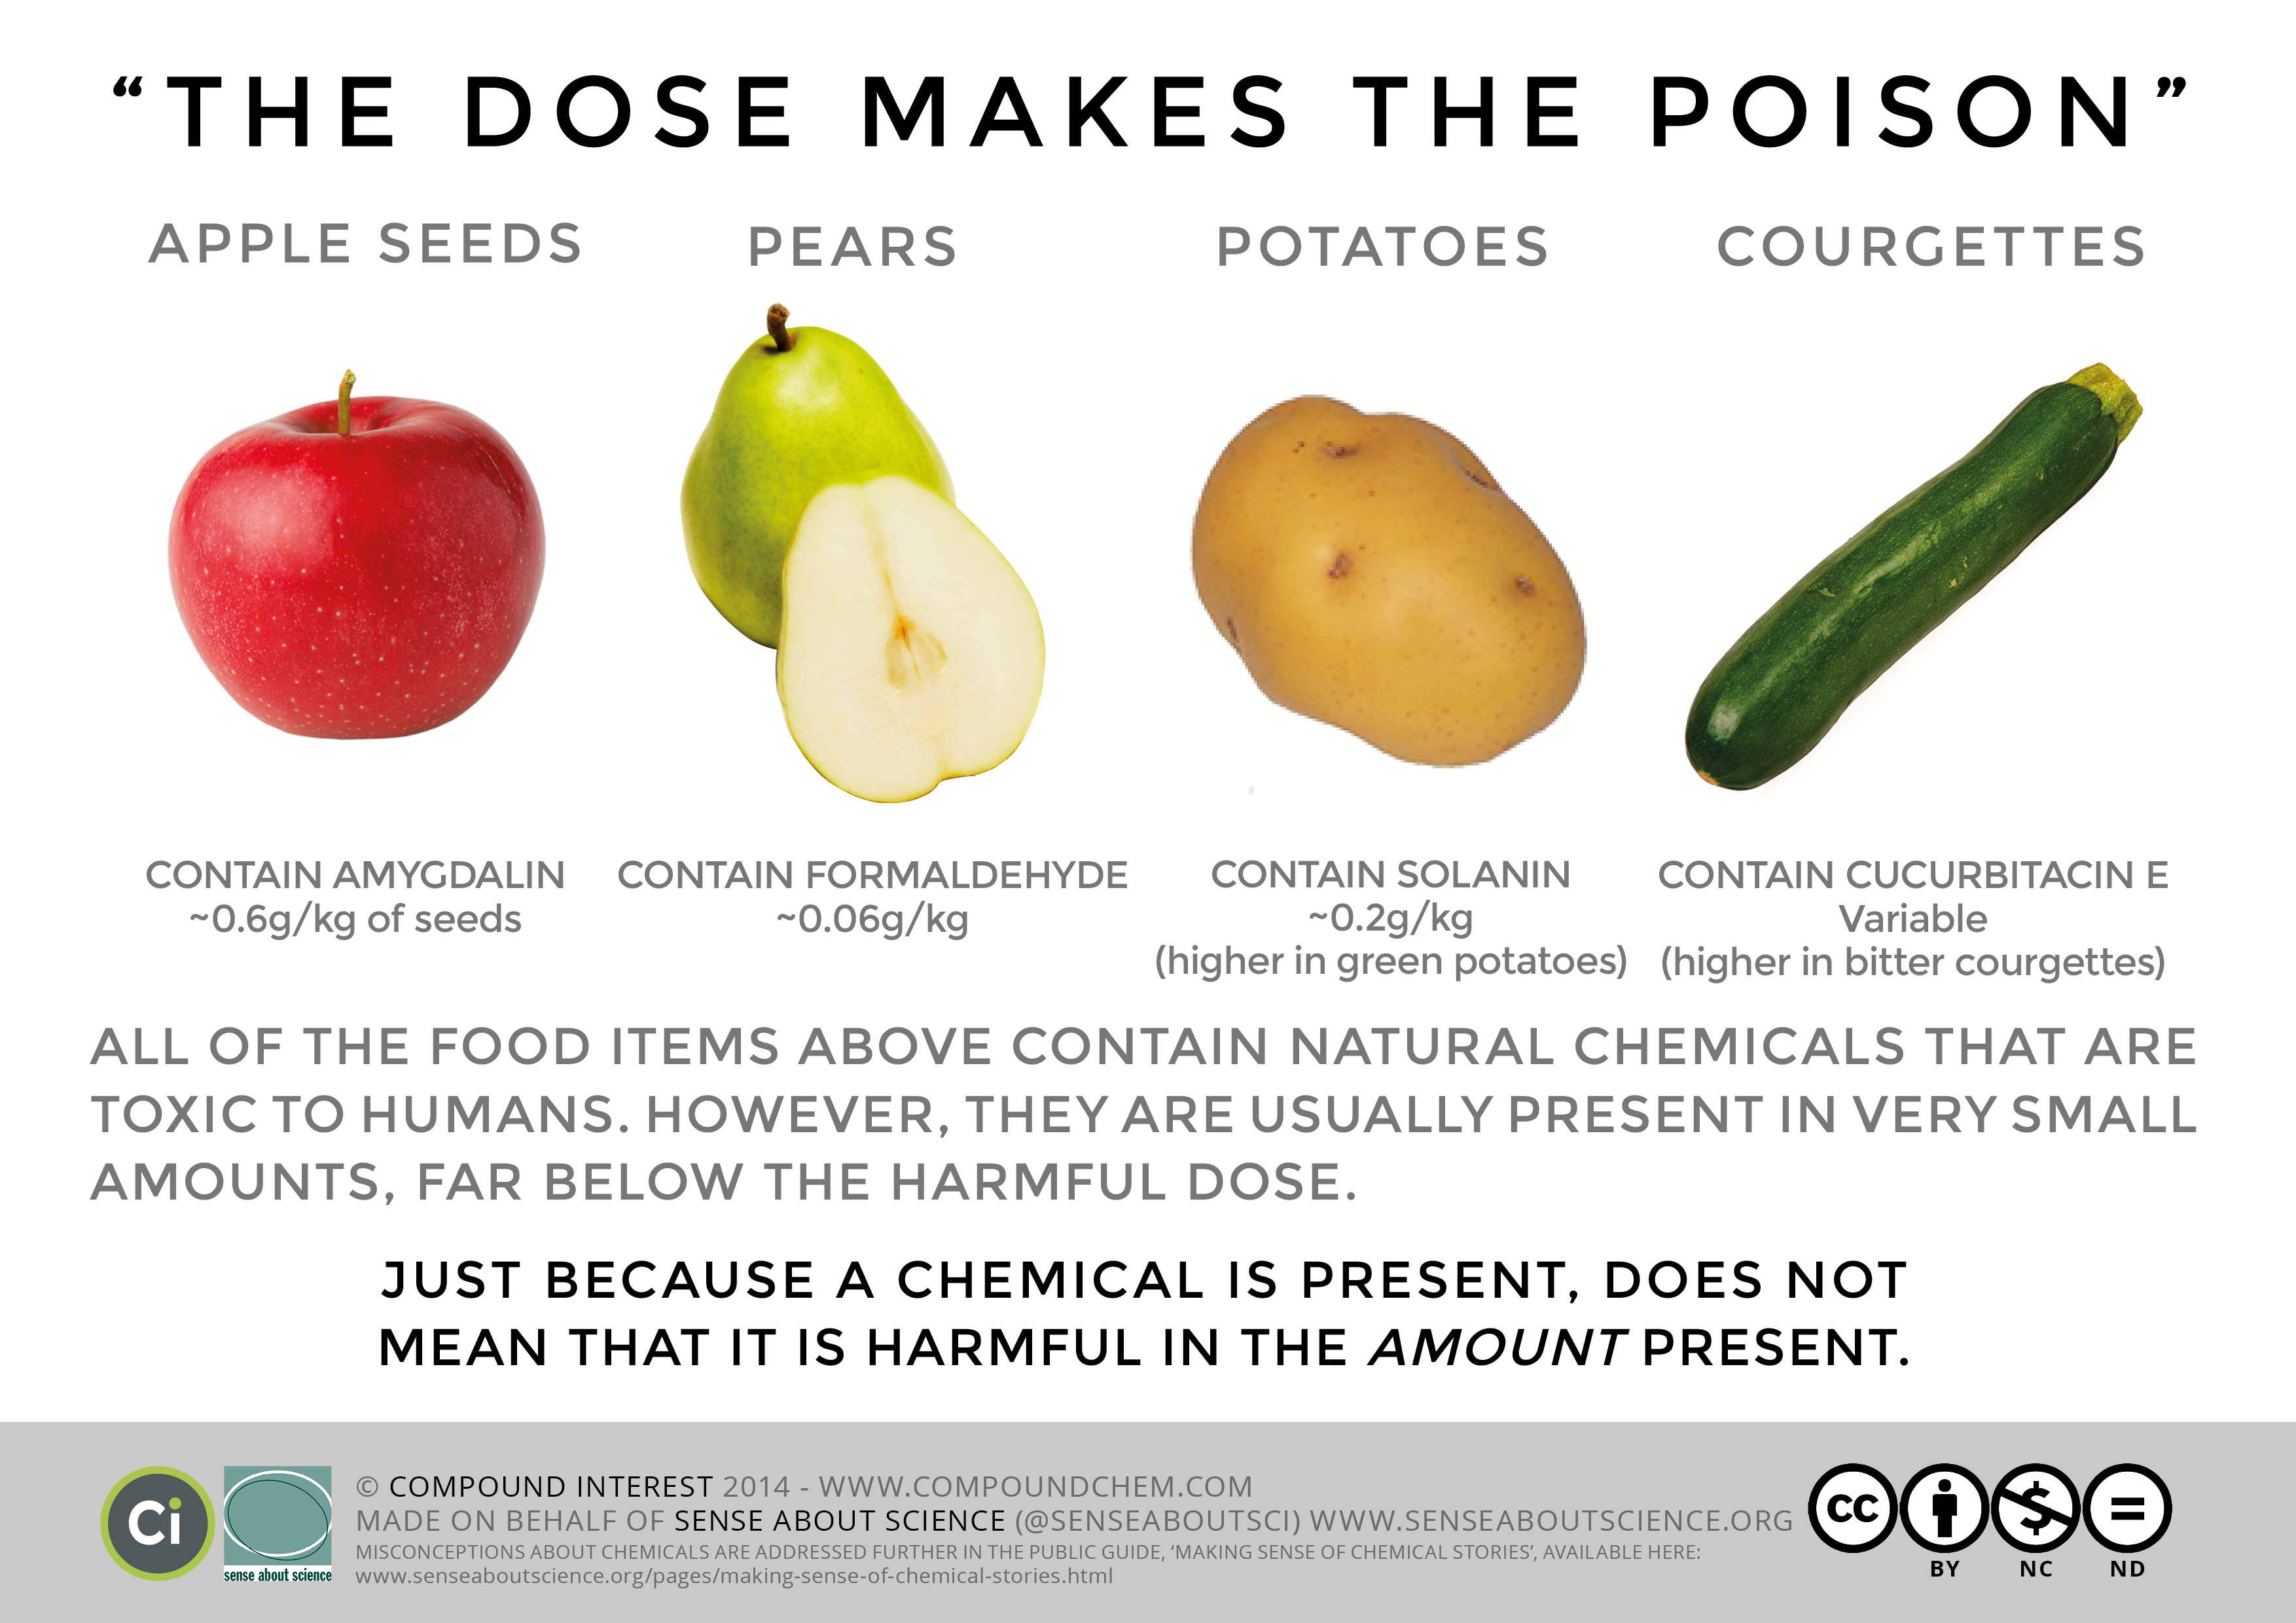 Natural Vs Manmade Toxins